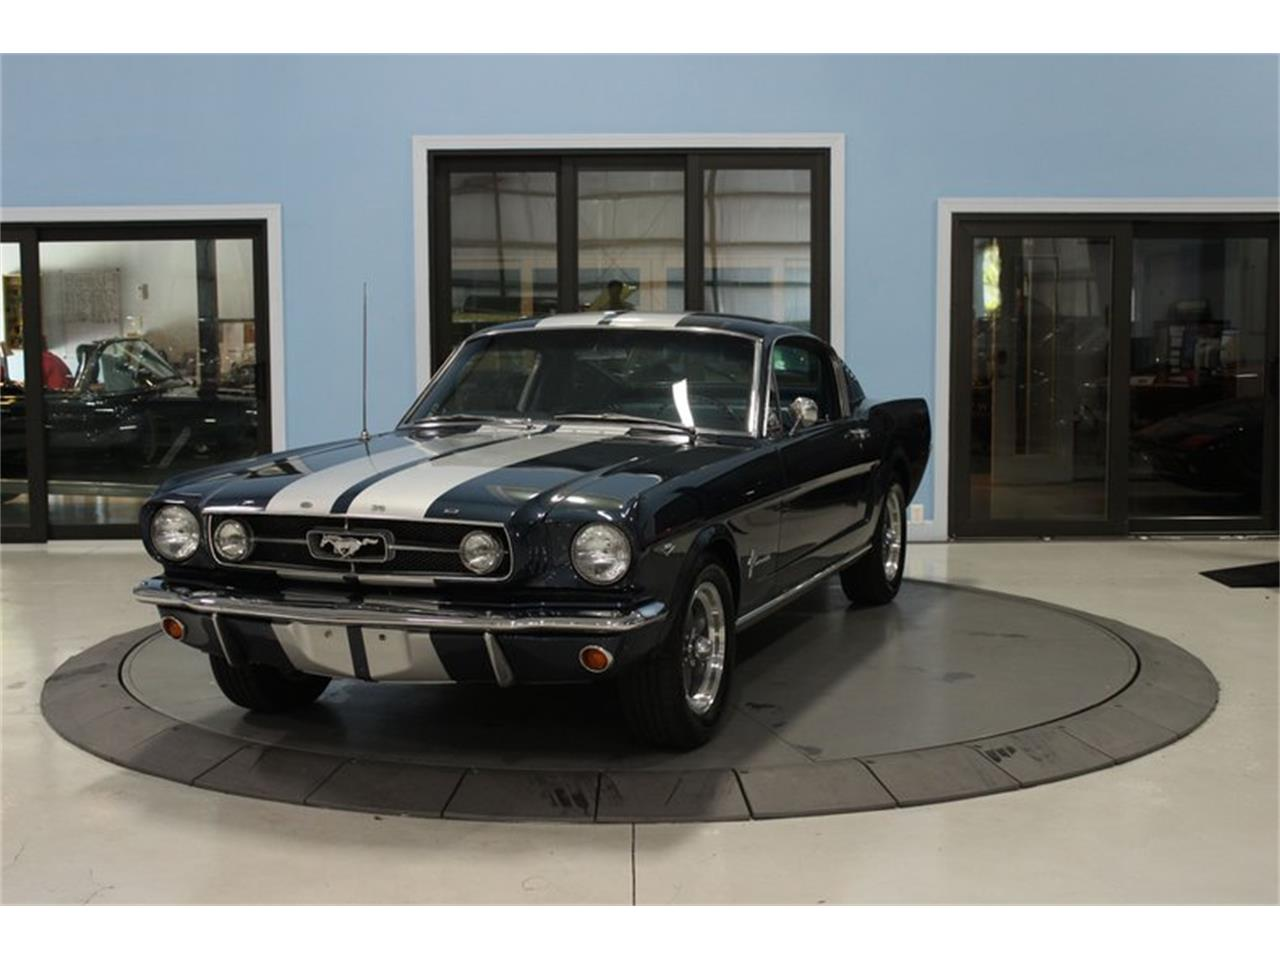 Ford Mustang Fastback 1965 prix tout compris 1965